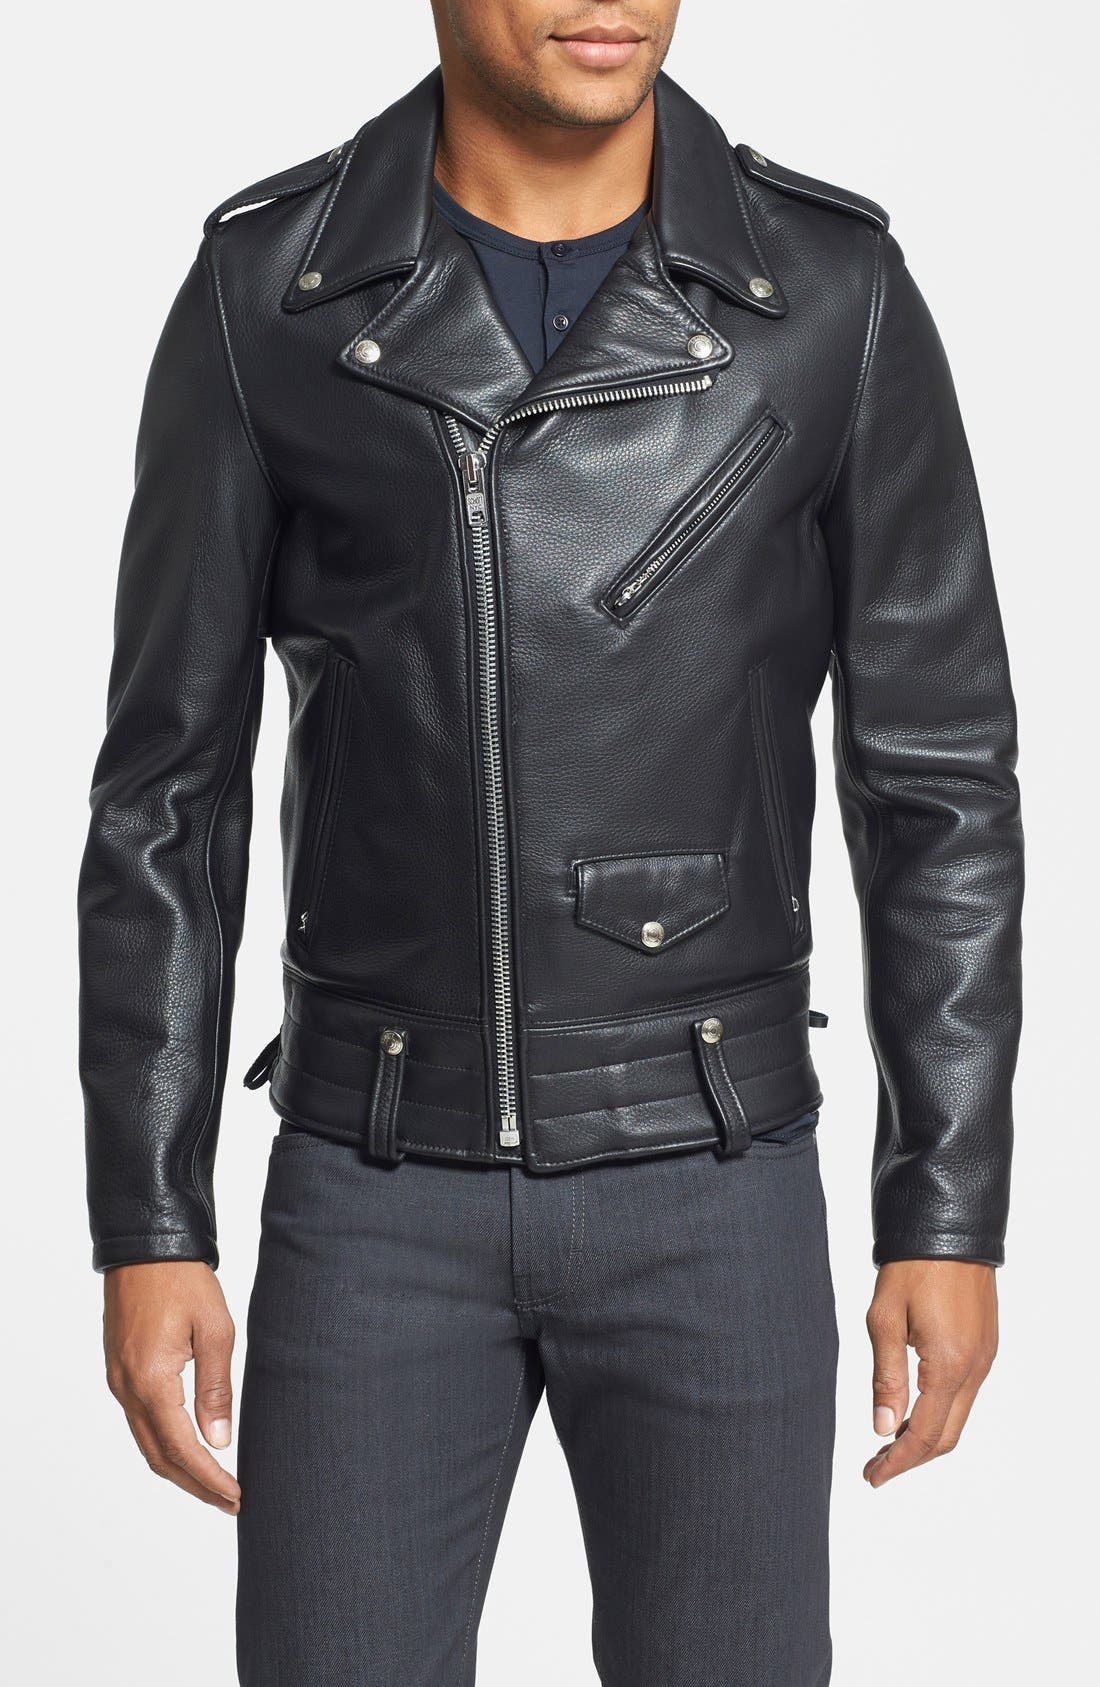 'Chips' Slim Fit Moto Leather Jacket,                             Main thumbnail 1, color,                             001